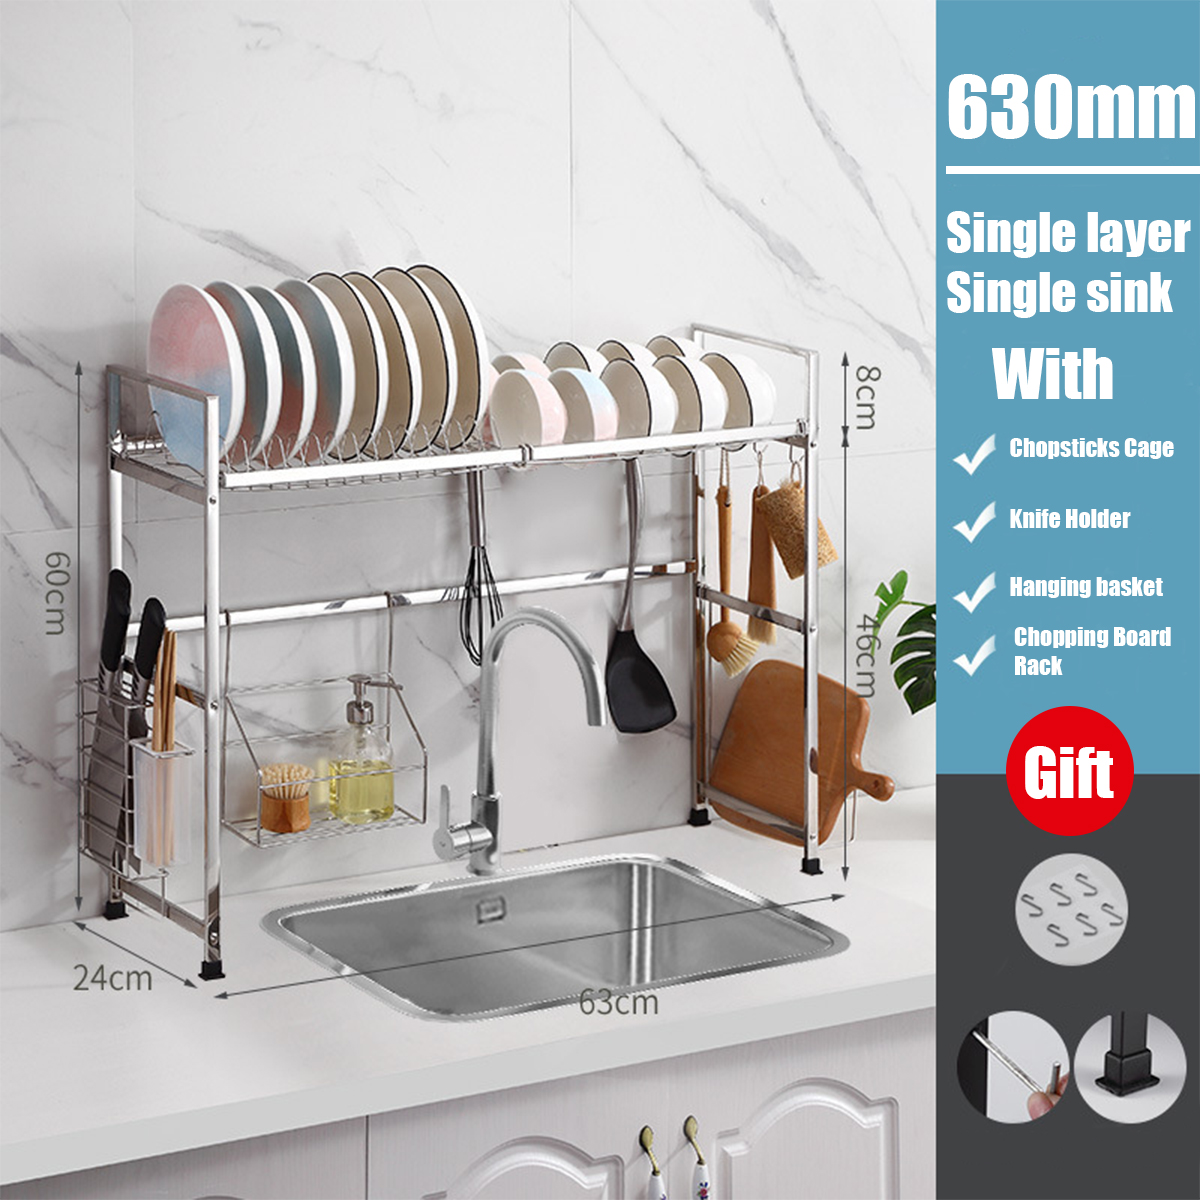 dish drying rack over the sink large dish rack drainer for kitchen organization storage space saver shelf holder with 6 utility hooks dish rack over